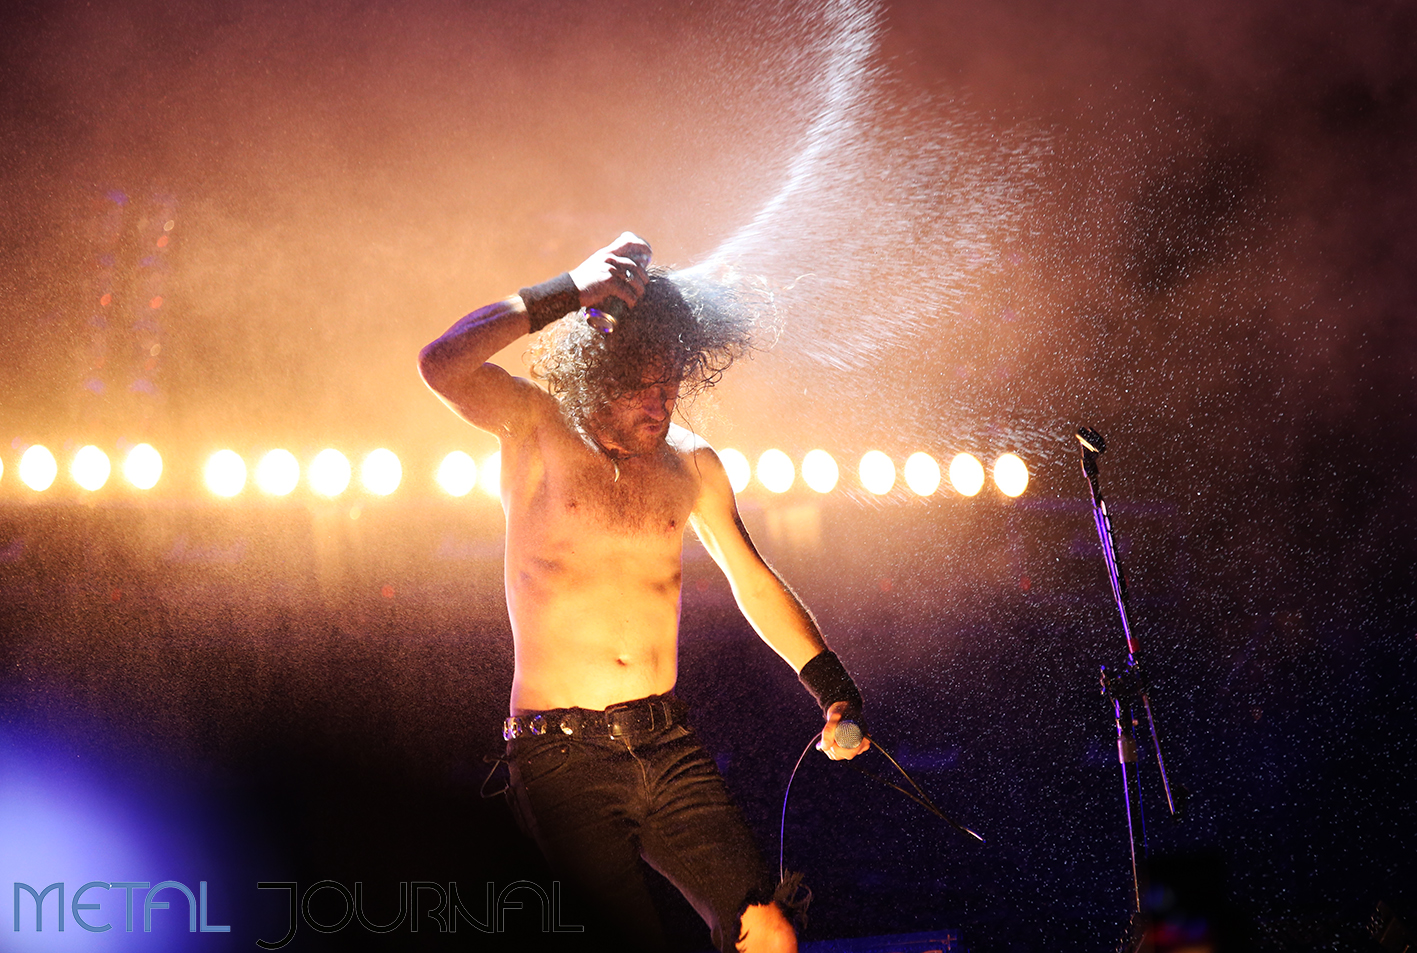 airbourne - leyendas del rock 2019 metal journal pic 3